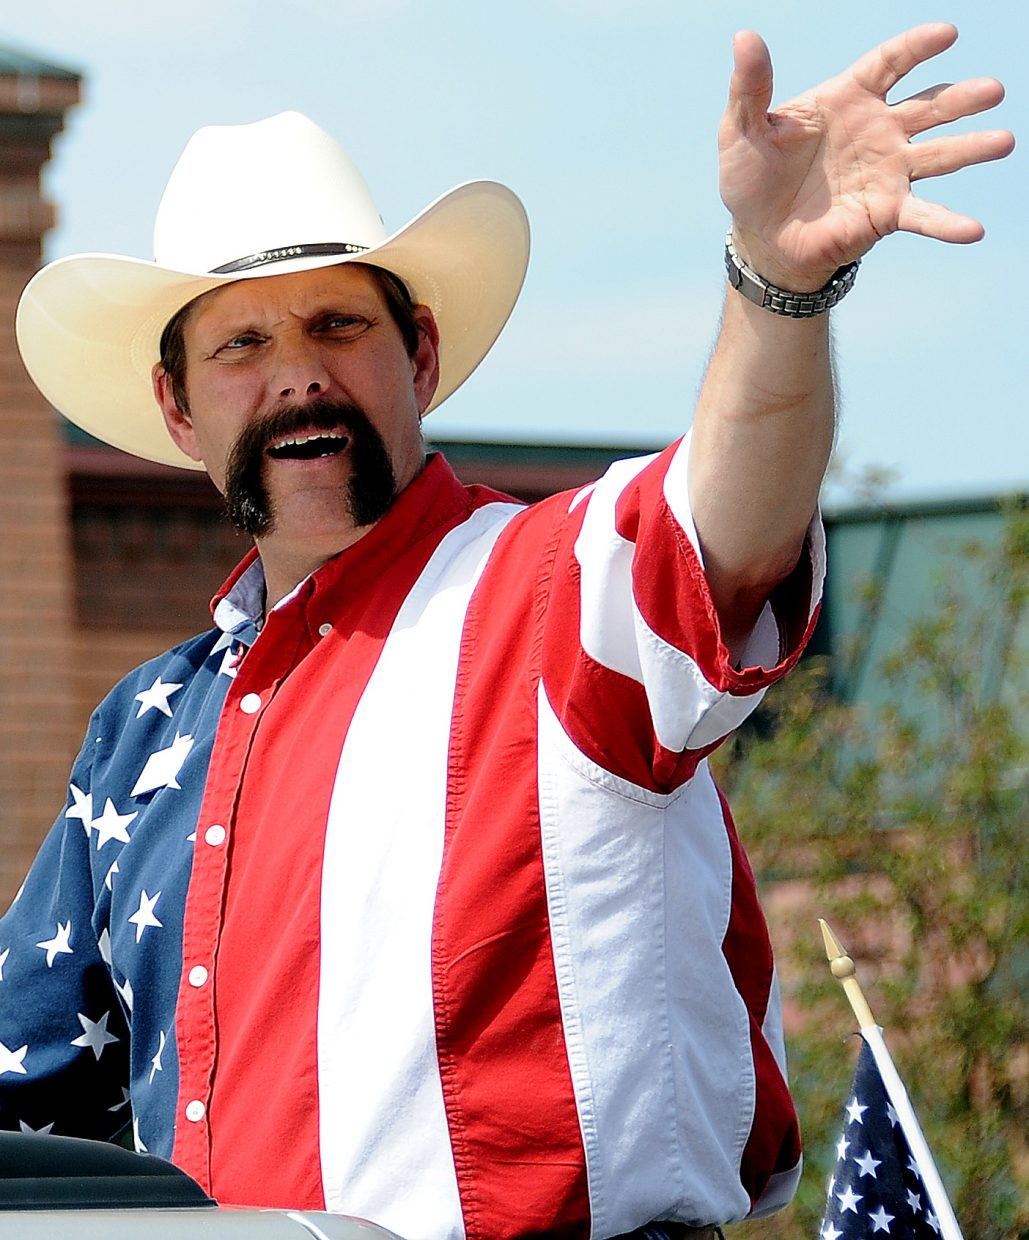 Randy Baumgardner waves to the crowd during the Fourth of July parade in Steamboat Springs.